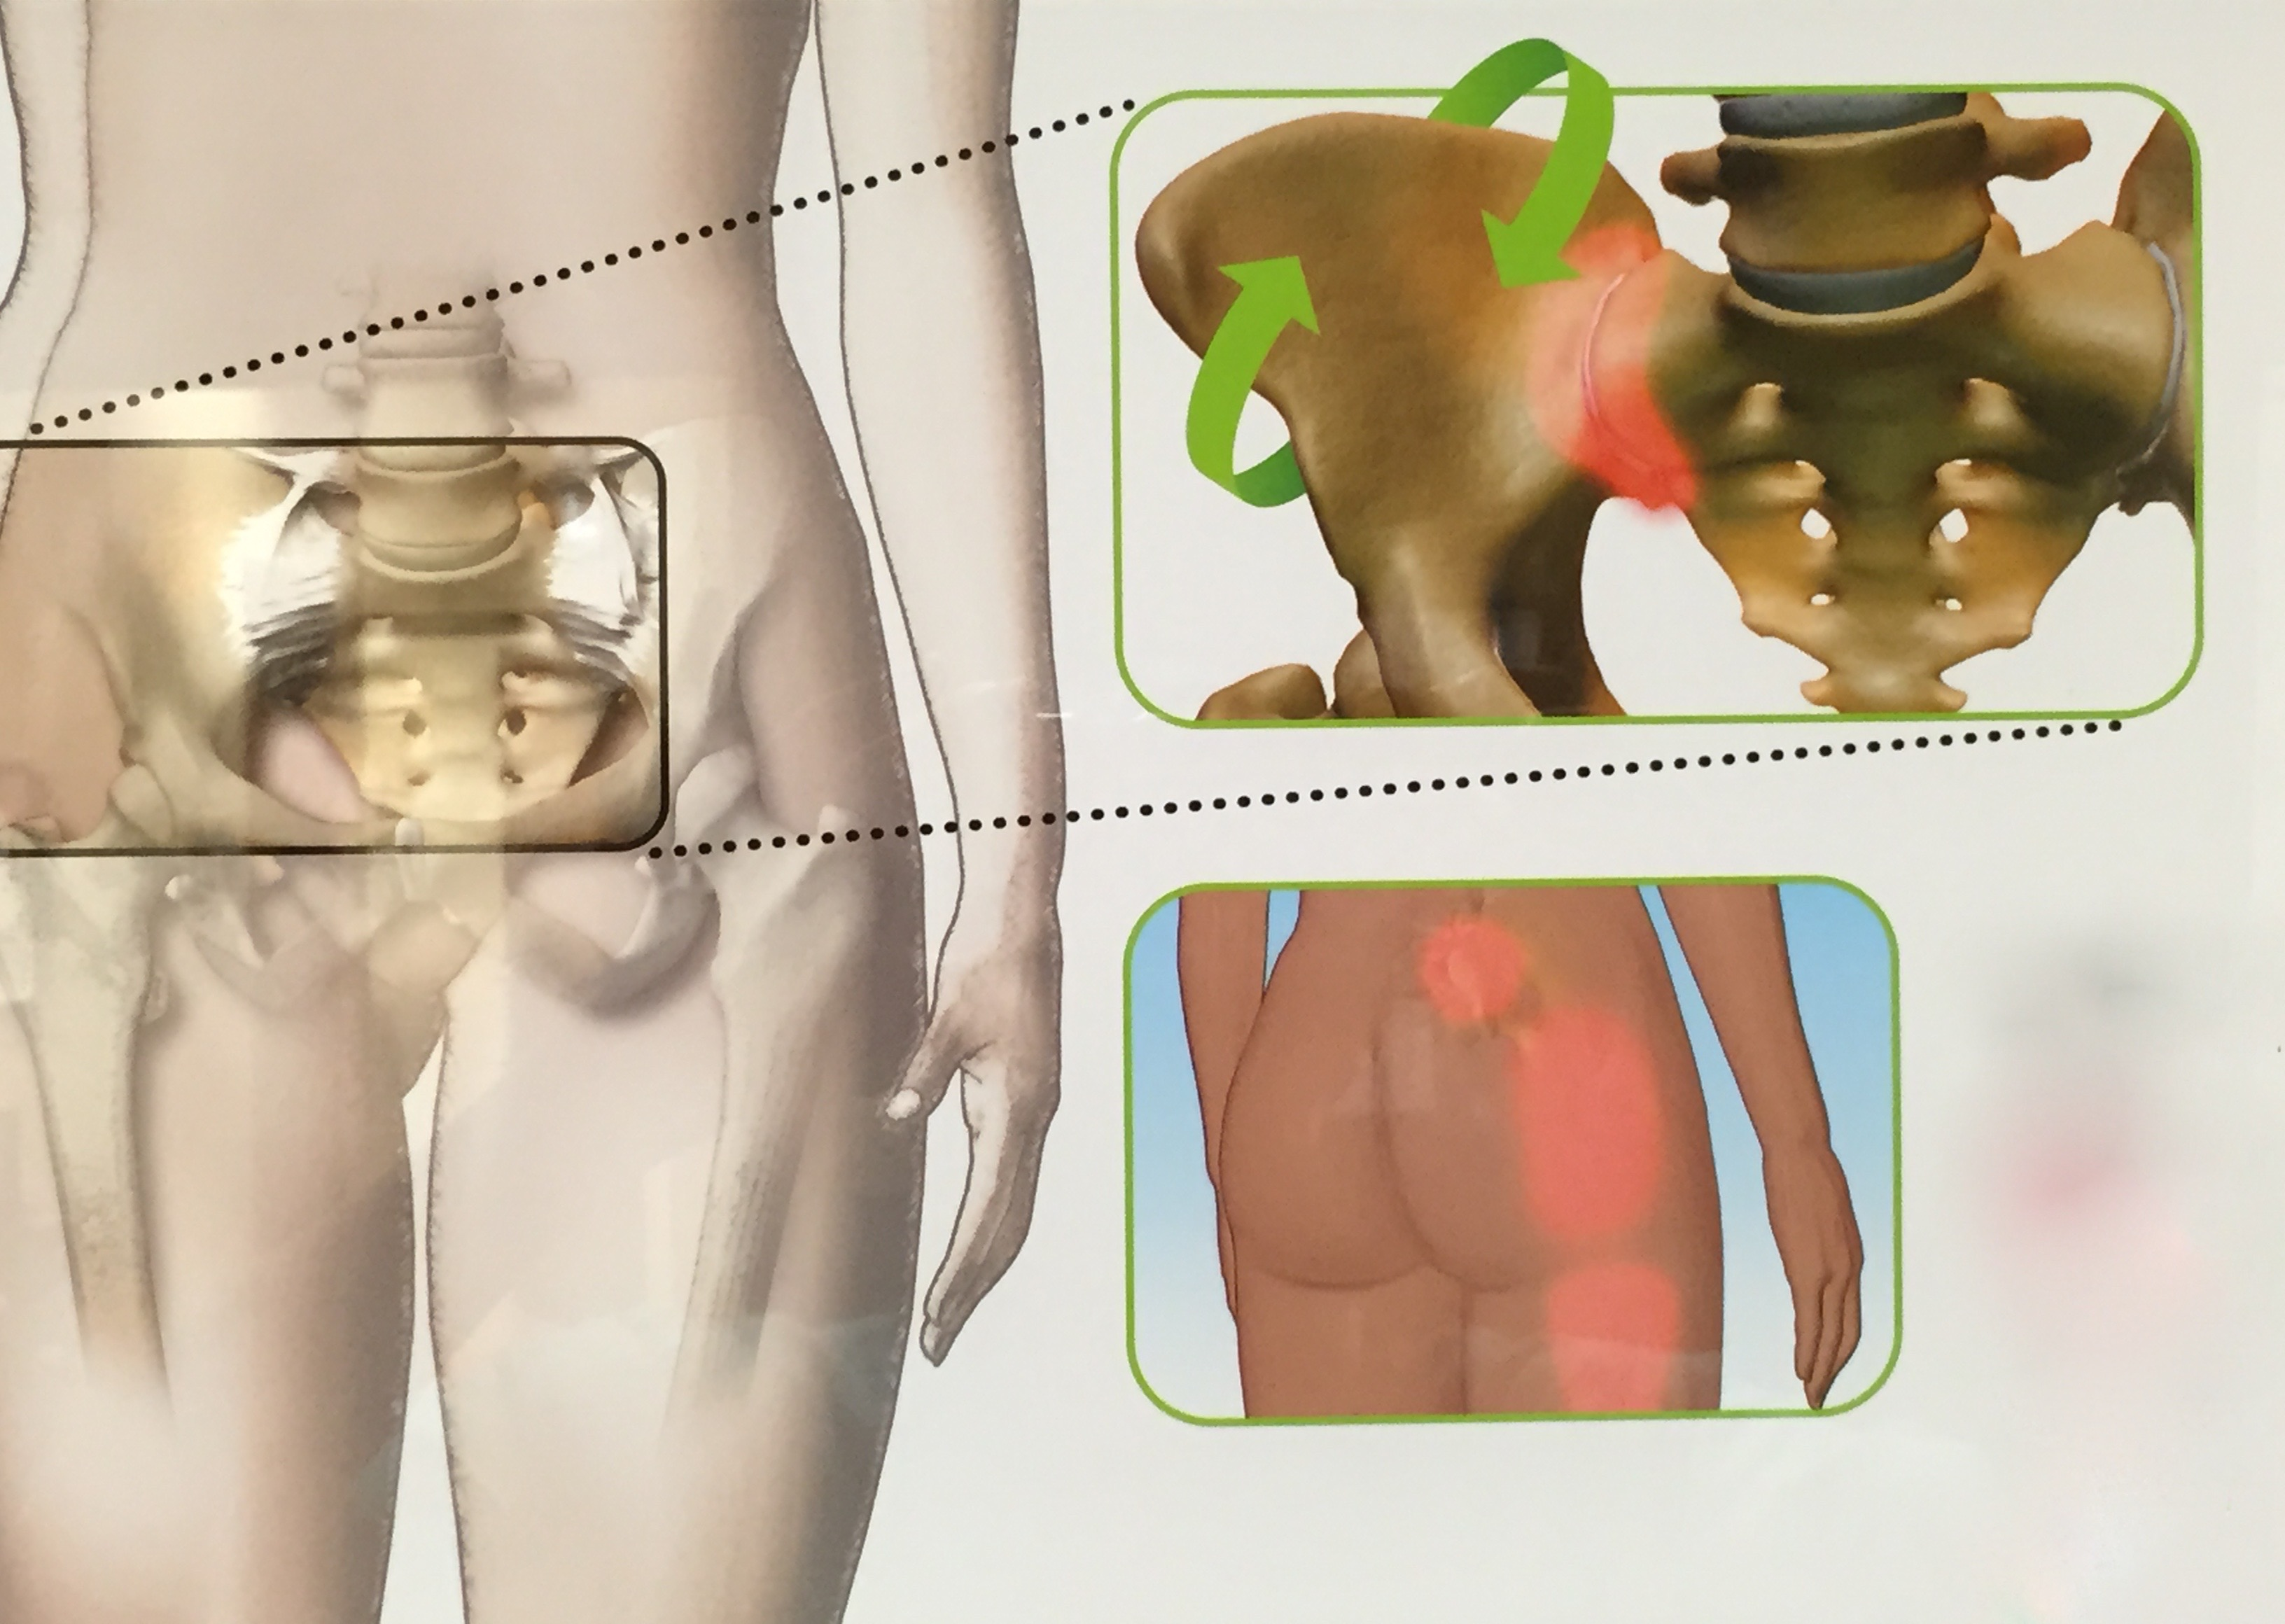 Sacroiliac (SI) Joint Disorders - Spinecare Medical Group